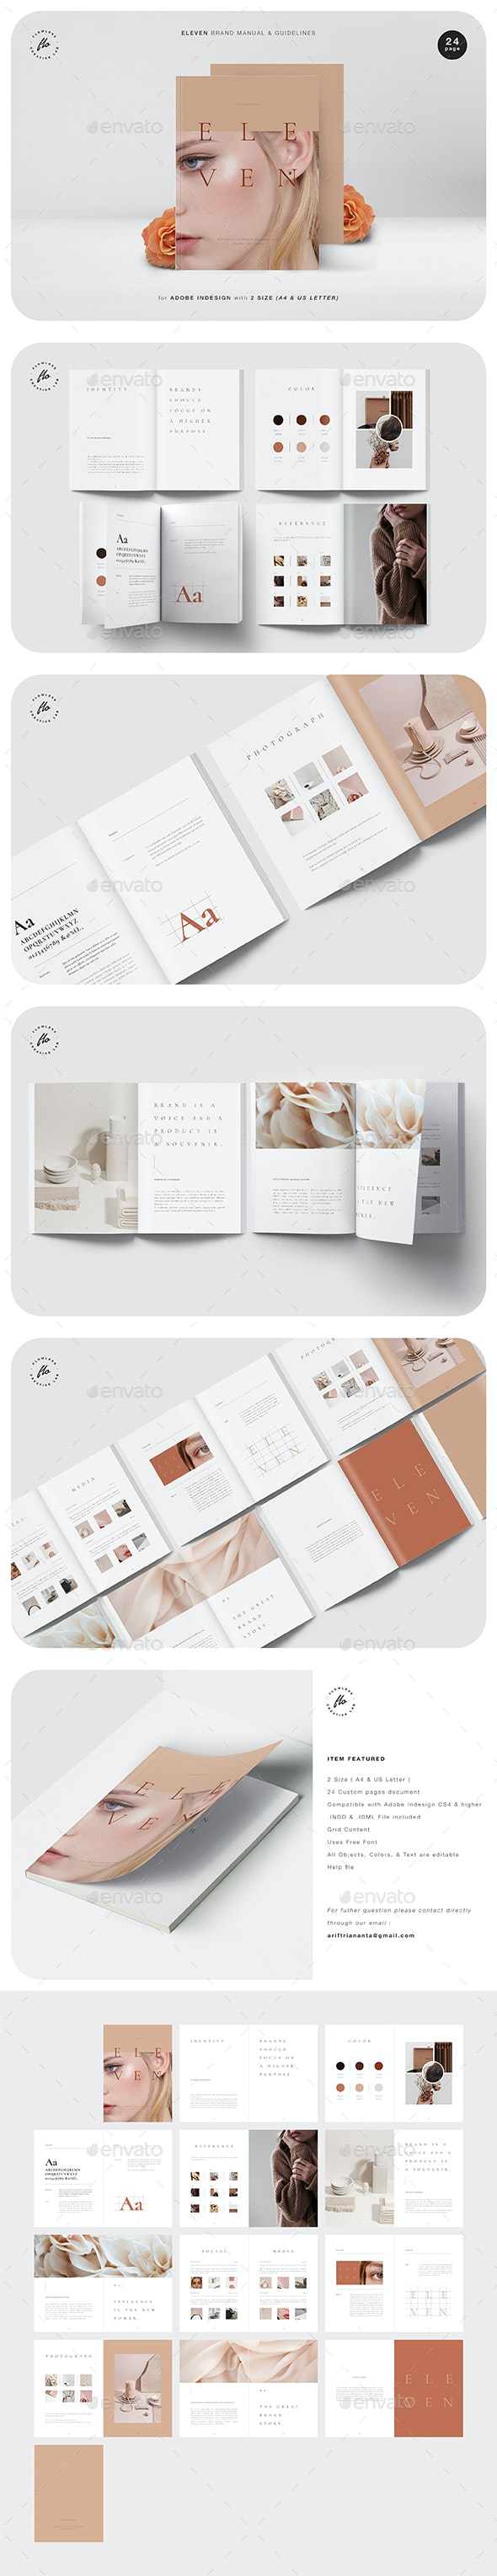 Eleven Brand Manual & Guidelines - Magazines Print Templates